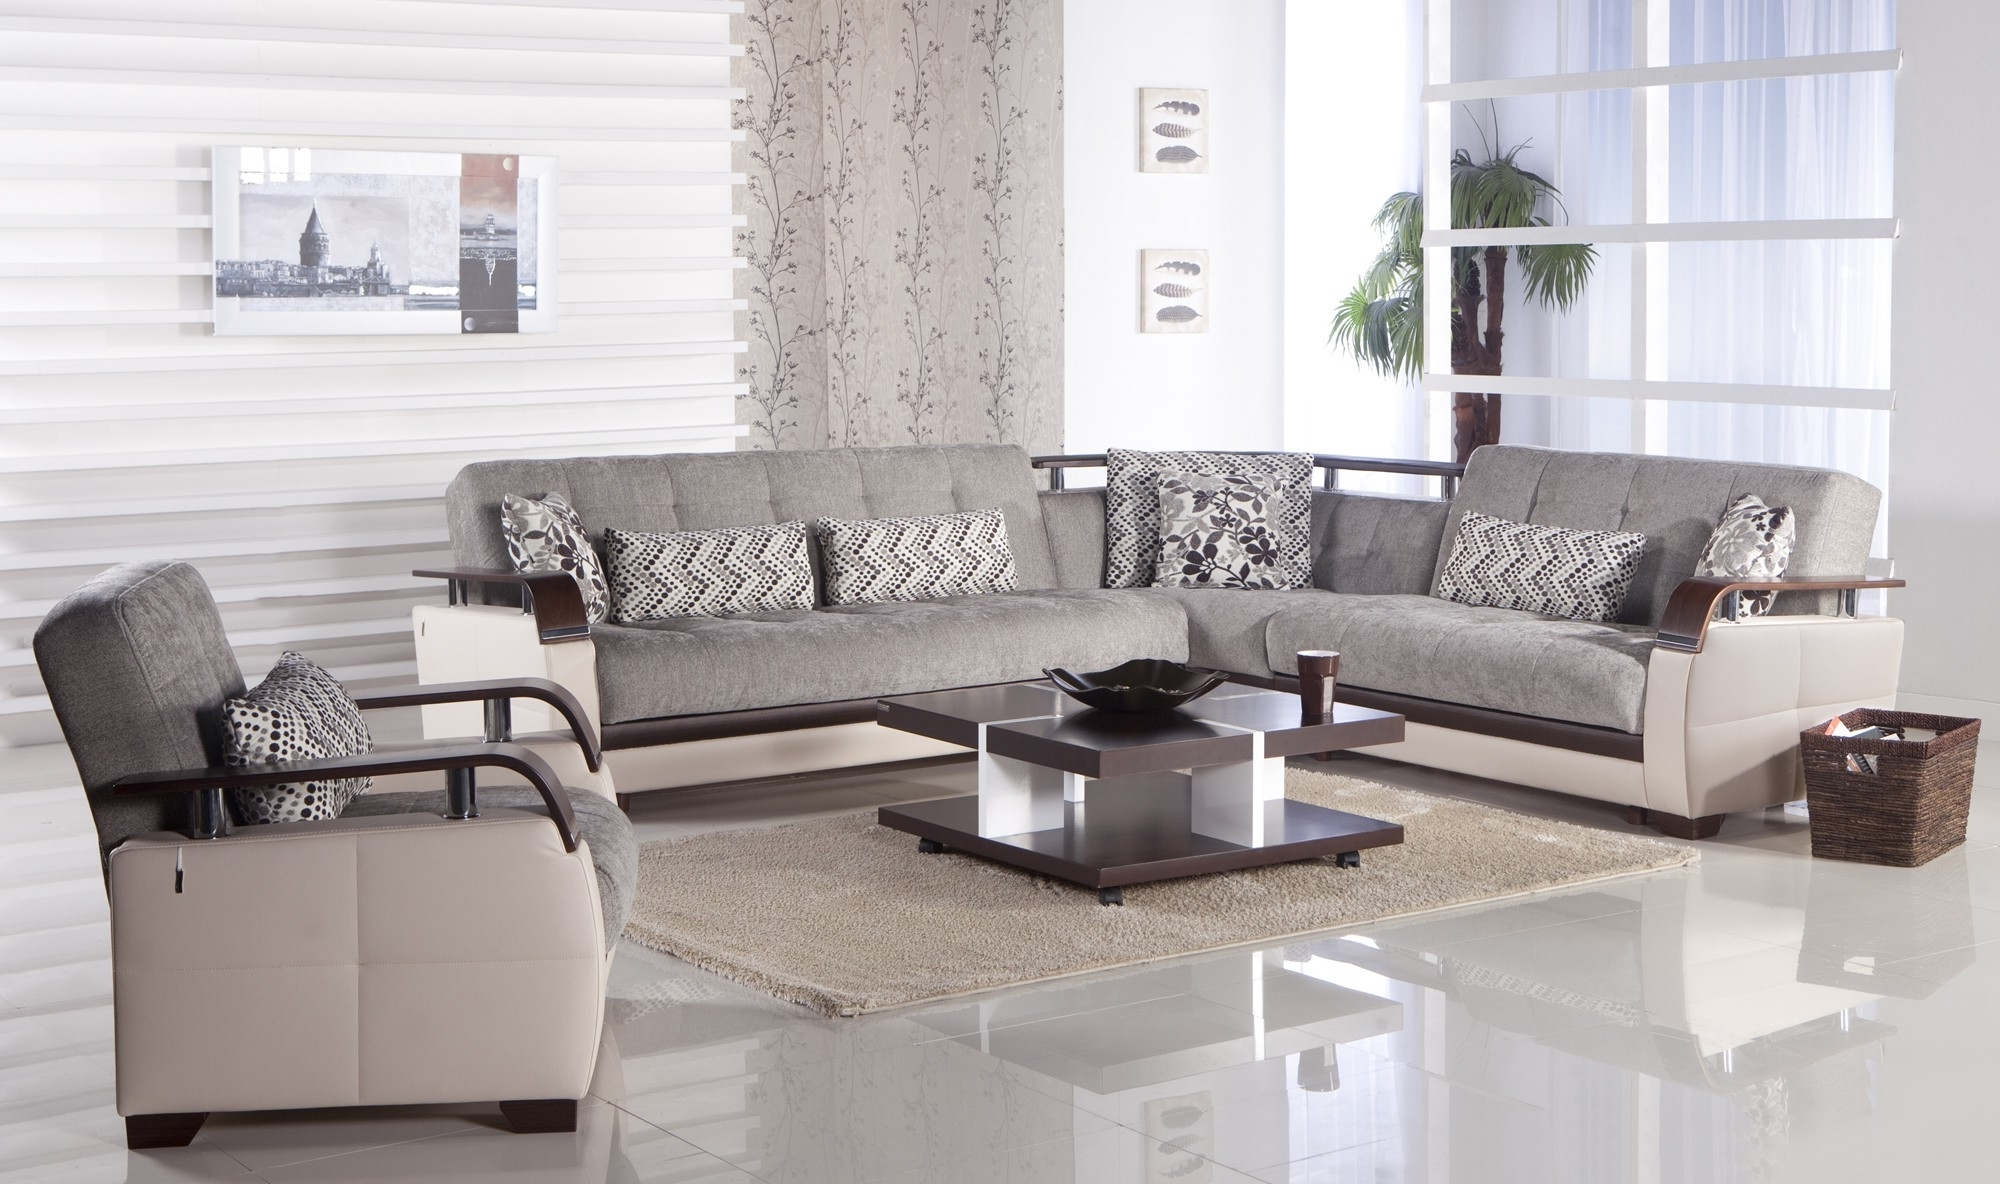 Ontario Canada Sectional Sofas Pertaining To Fashionable Grey Leather Sectional Sofa Canada – Hereo Sofa (View 11 of 20)